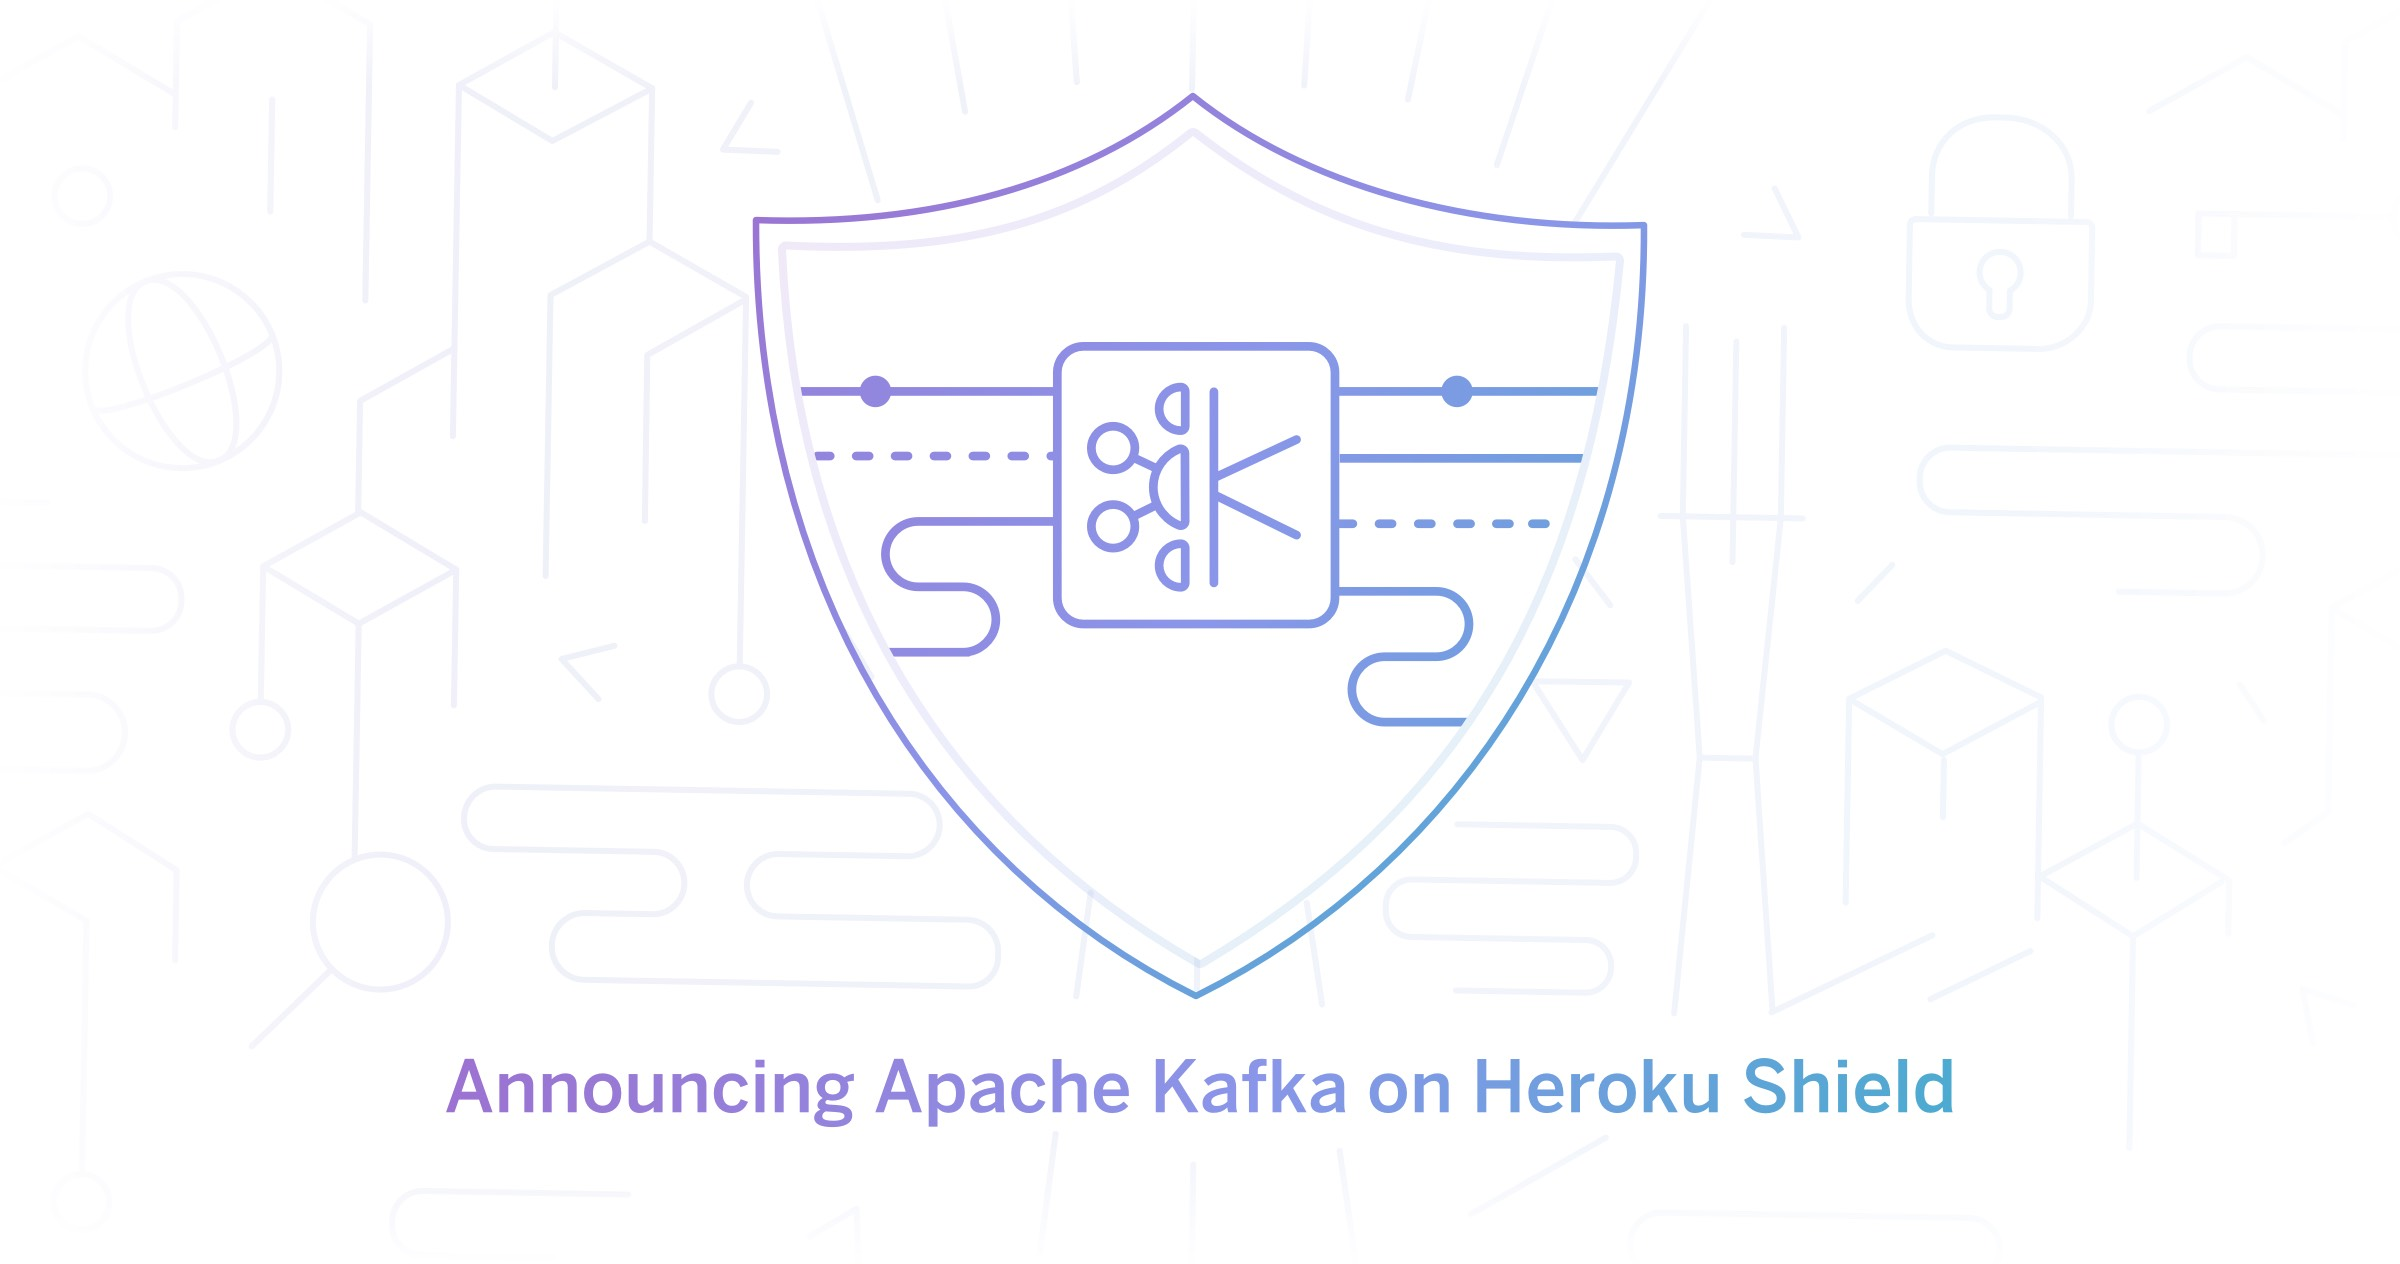 Apache Kafka on Heroku Shield